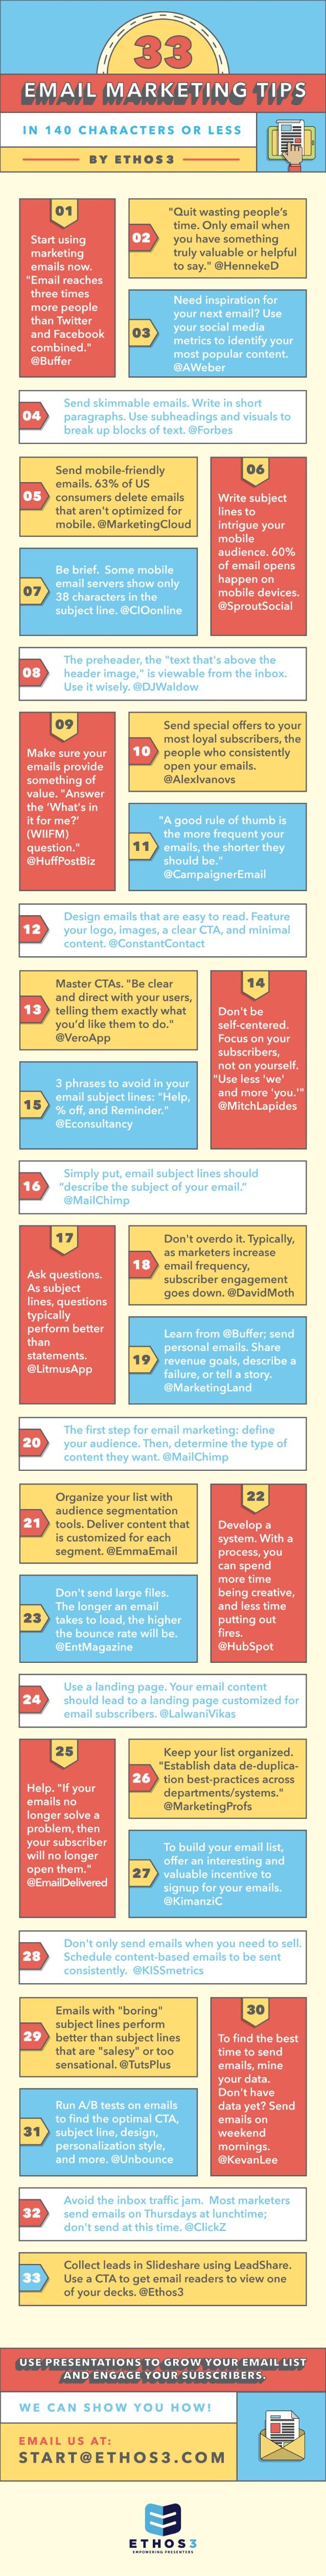 A collection of important email marketing tips to follow for campaign success while increasing your click through rate. #CTR #Email #Marketing